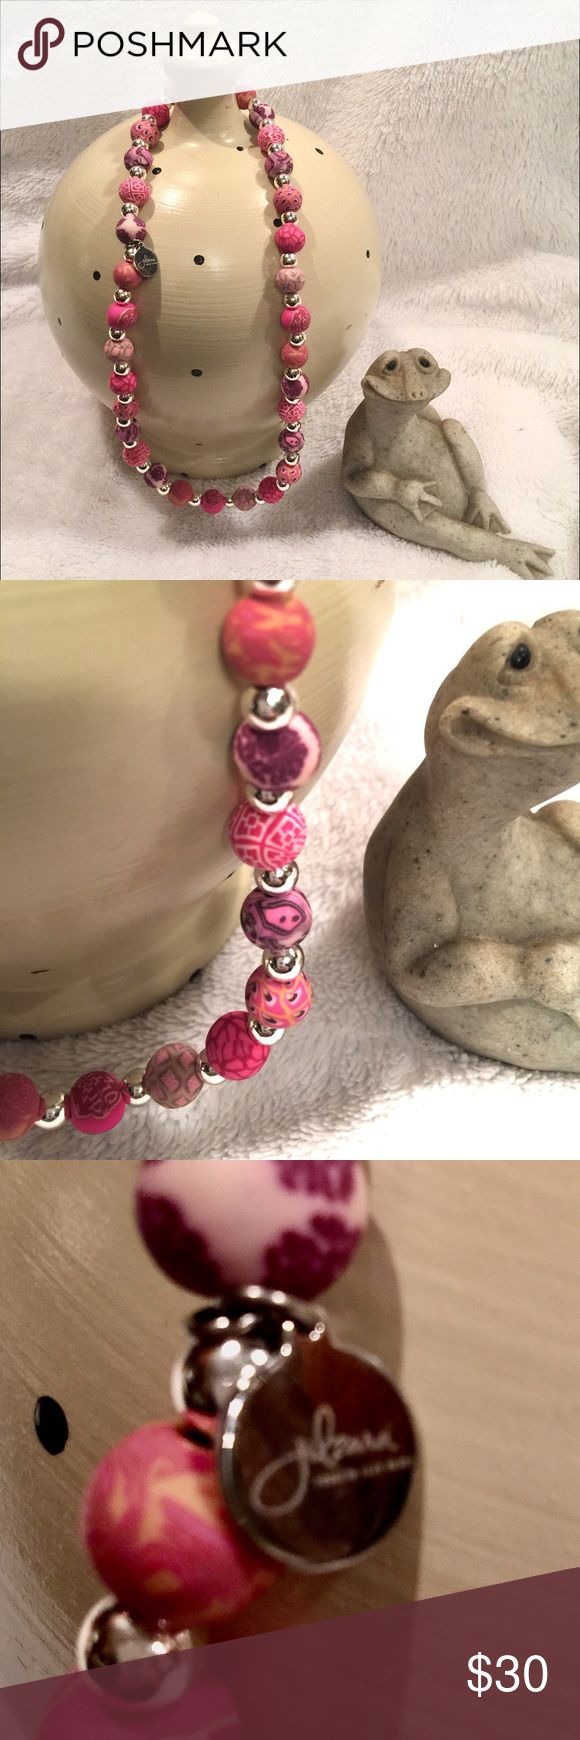 """Jilzara Handmade Beaded Pink Clay Necklace Jilzara 16"""" necklace on an elastic band. Each bead is unique and handmade. Different tones and patterns of pink with silver tone smaller beads in between. It has the small 'Jilzara' charm. Perfect for spring and summer. jilzara Jewelry Necklaces"""